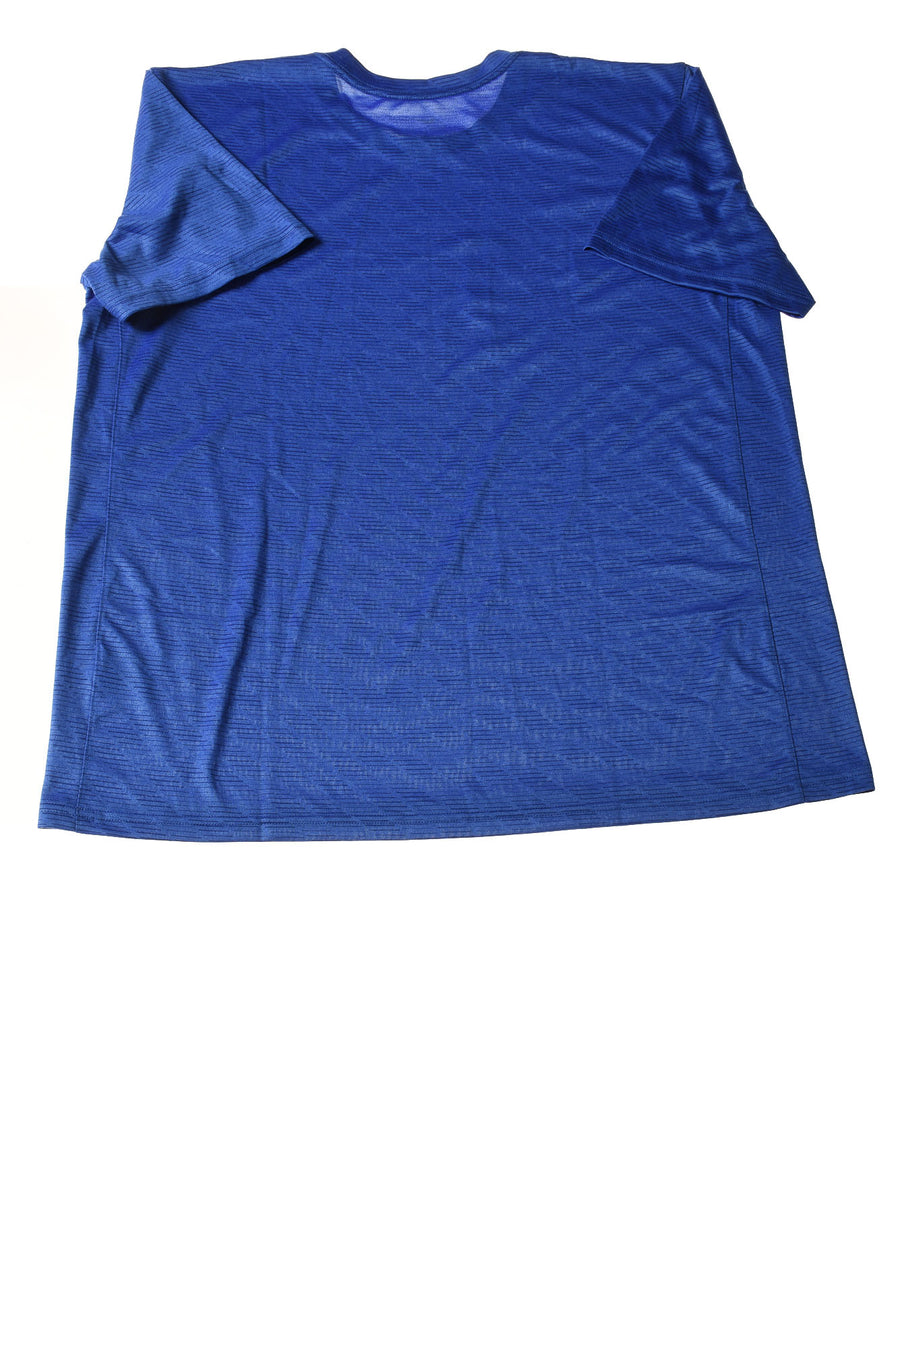 NEW Nike Men's Shirt X-Large Blue